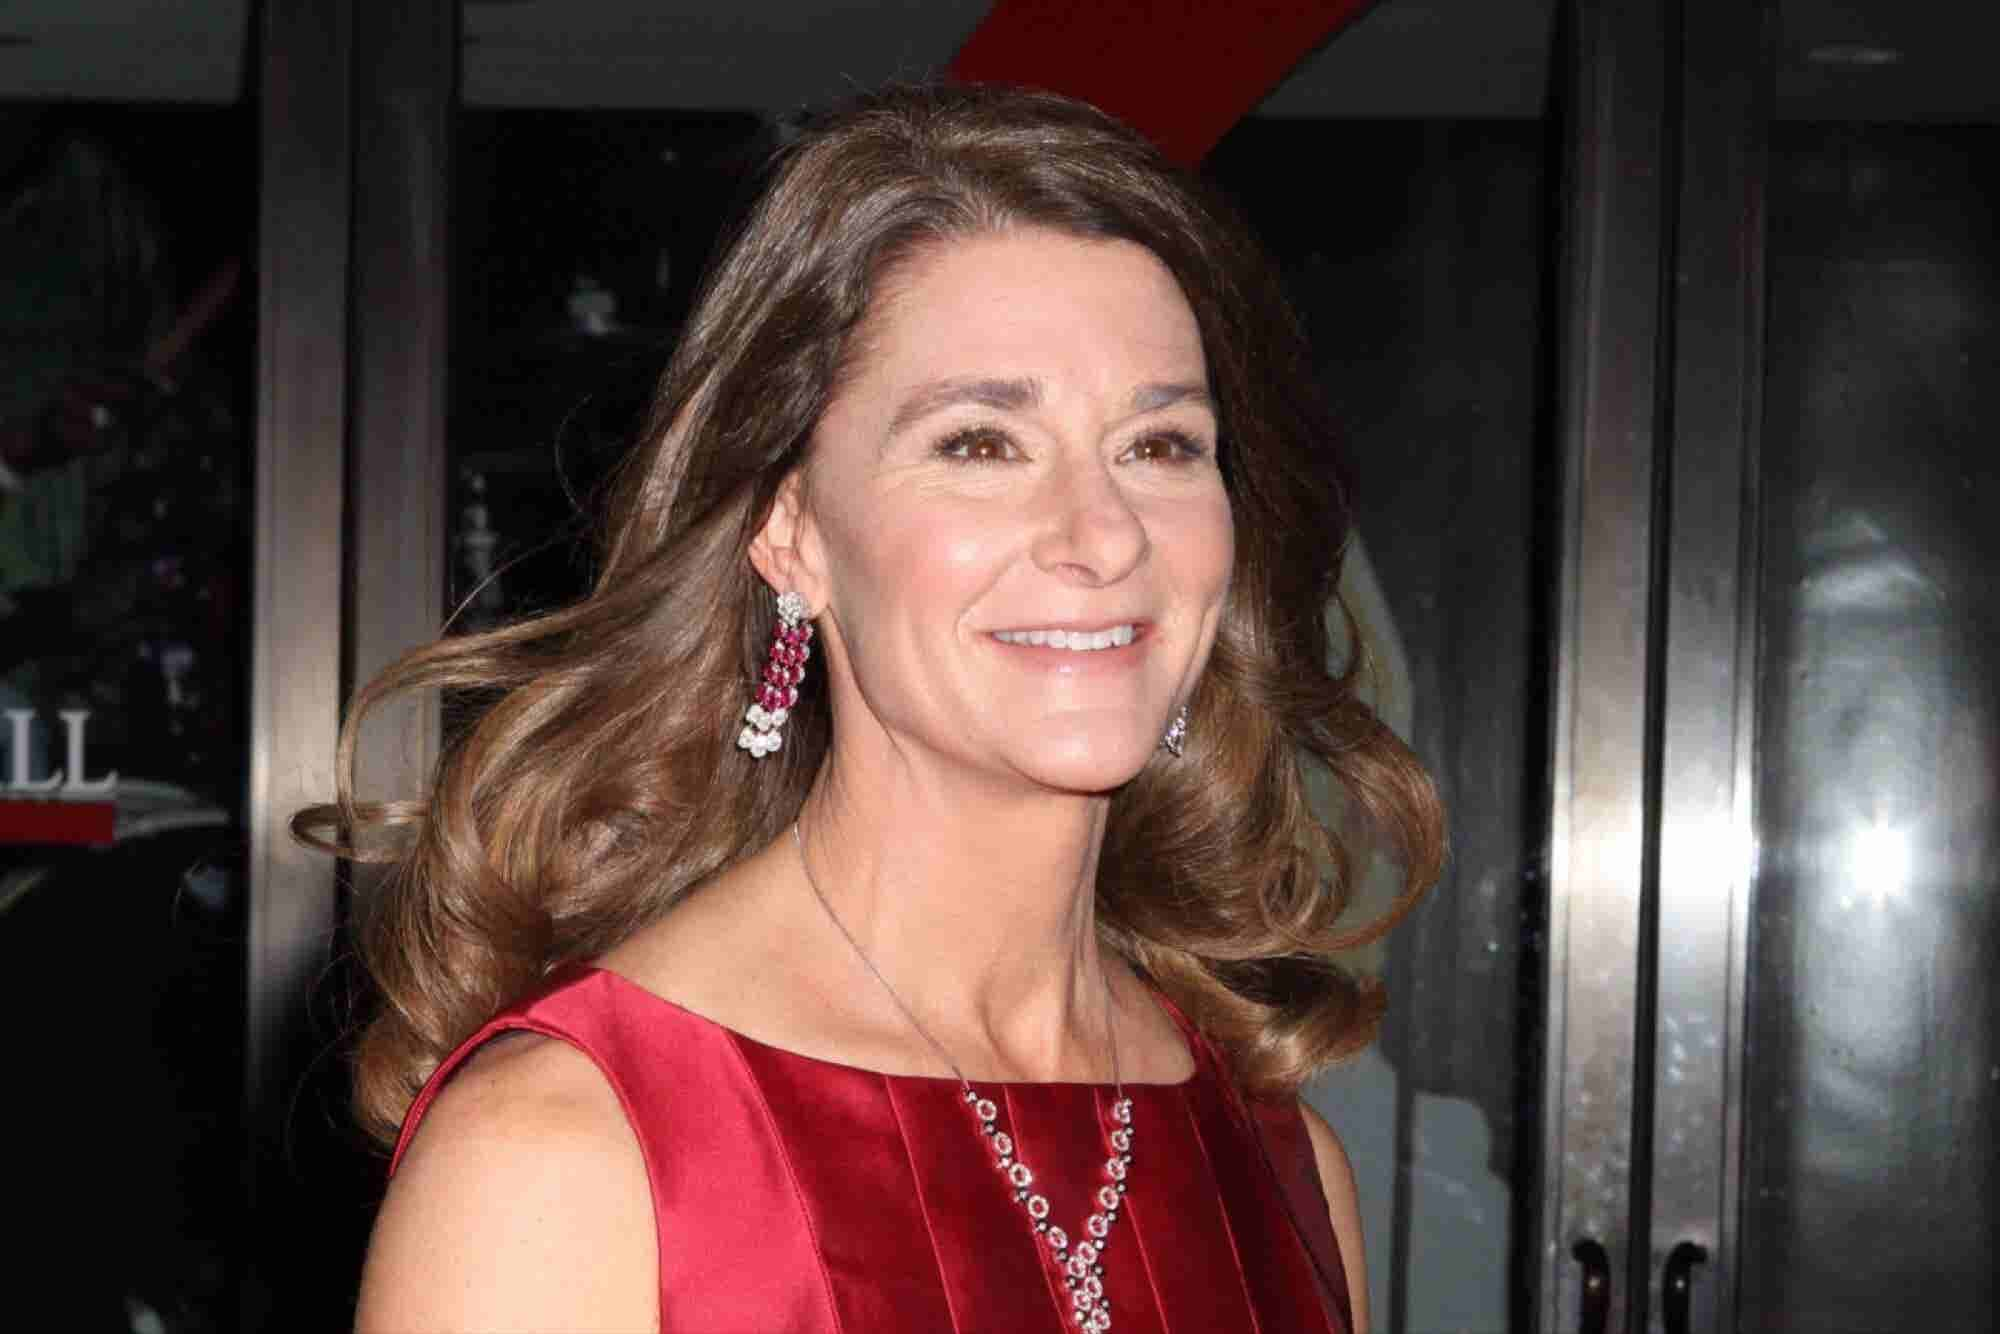 Melinda Gates: Why Hiring Women Is Good for Business